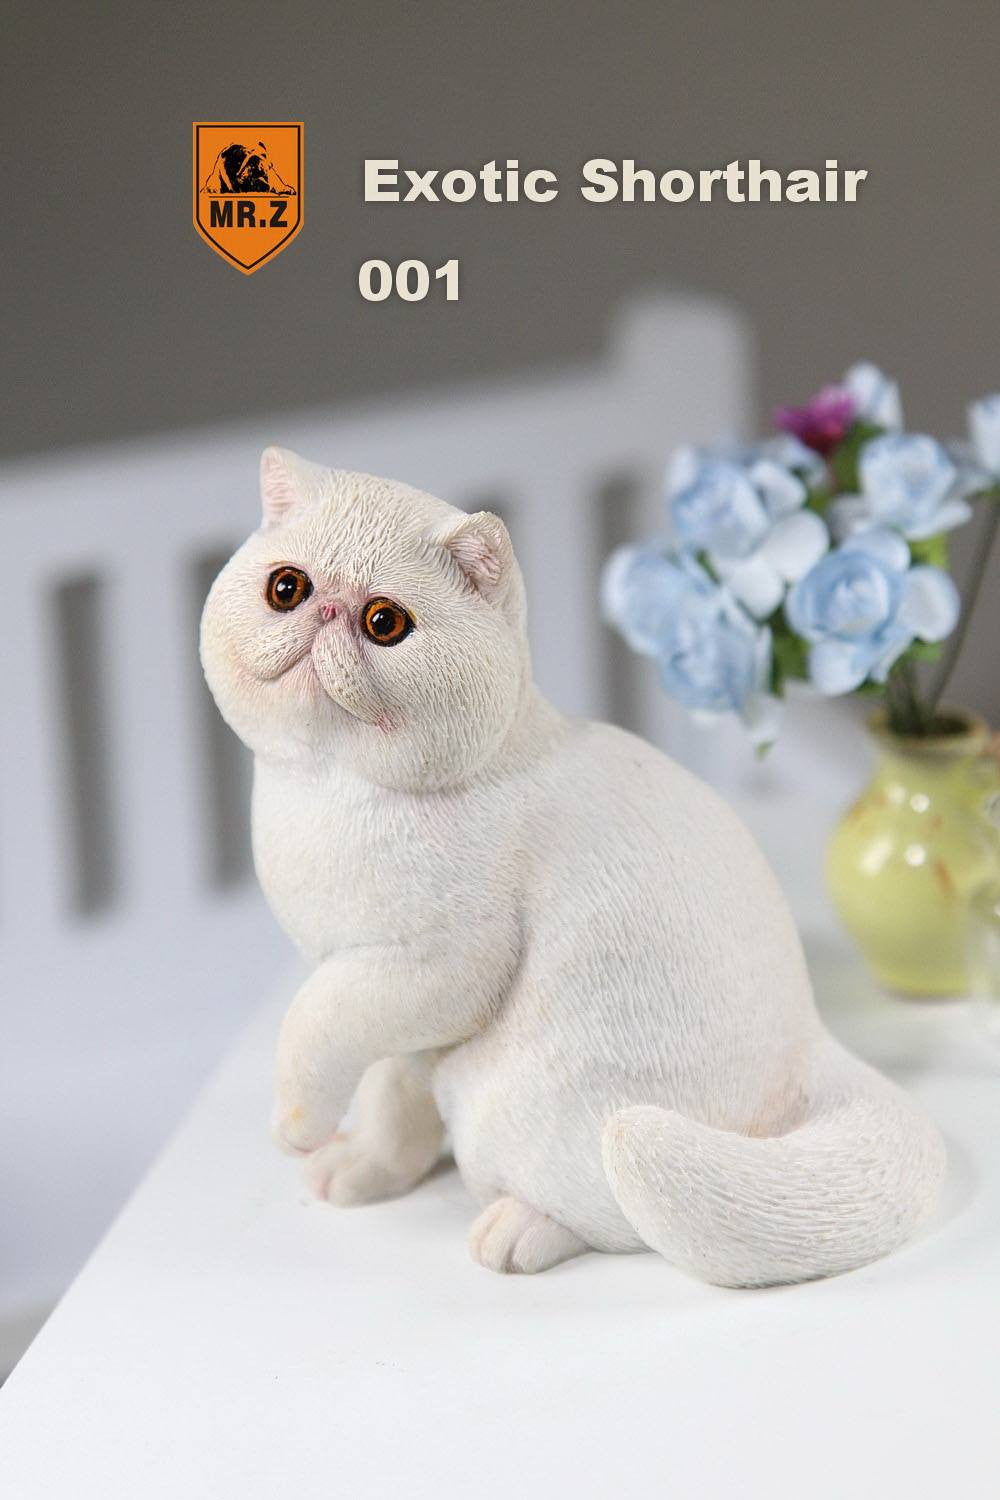 MR.Z - Real Animal Series No.8 - 1/6th Scale Exotic Shorthair Cat (Garfield) 001-005 - Marvelous Toys - 2